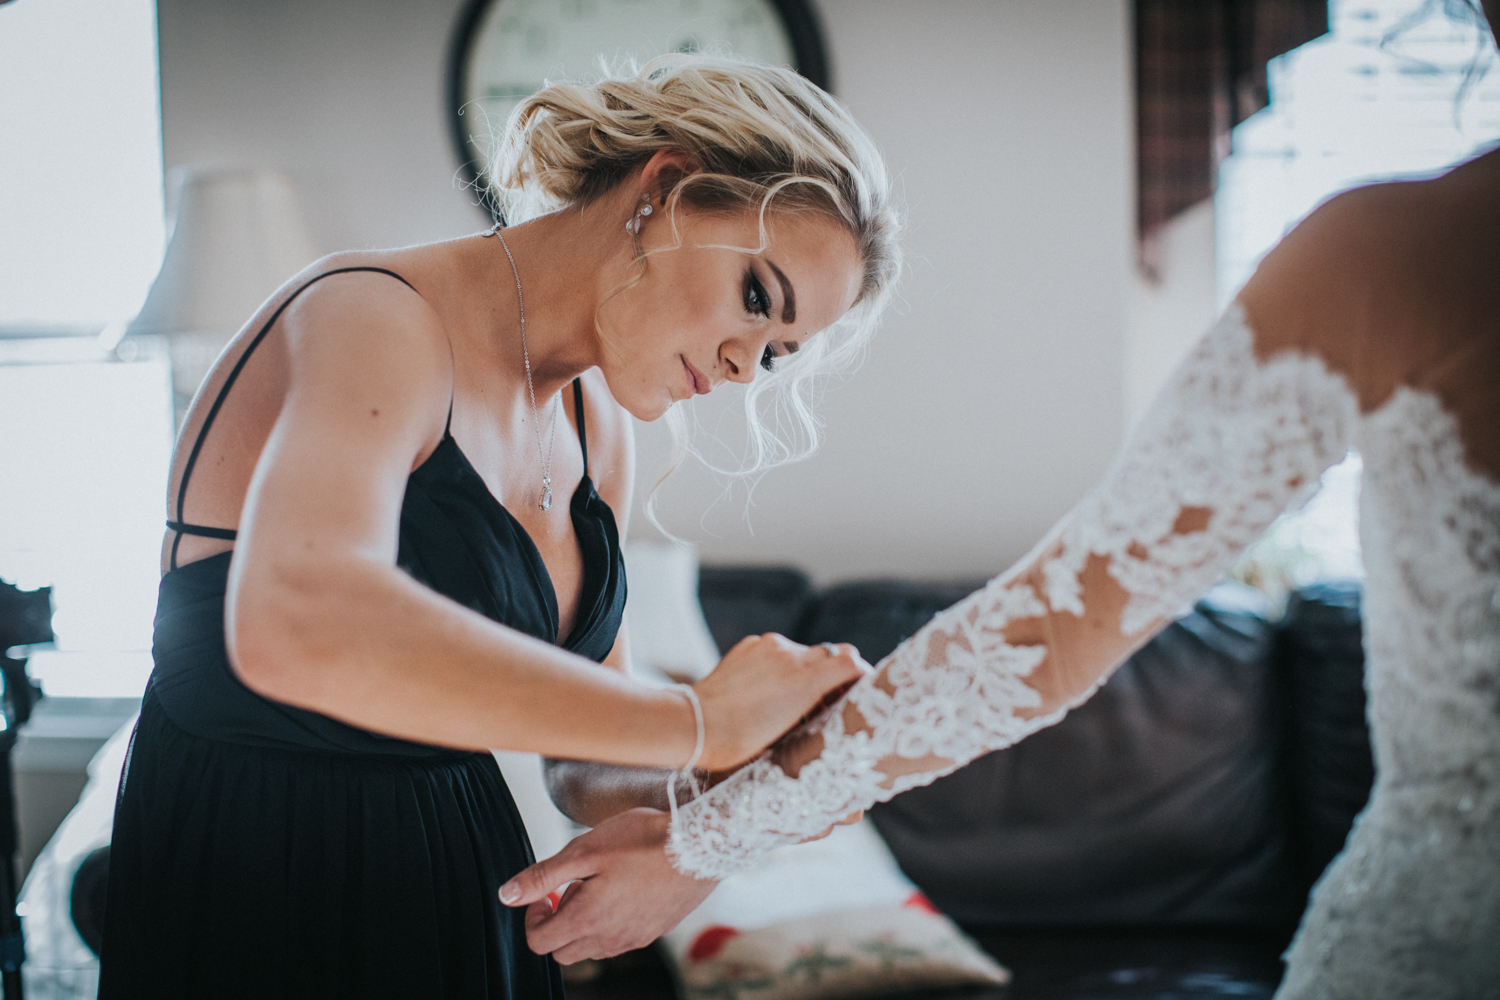 The-Mansion-NJ-Wedding-Jenna-Lynn-Photography-BriannaJimmy-GettingReady-96.jpg